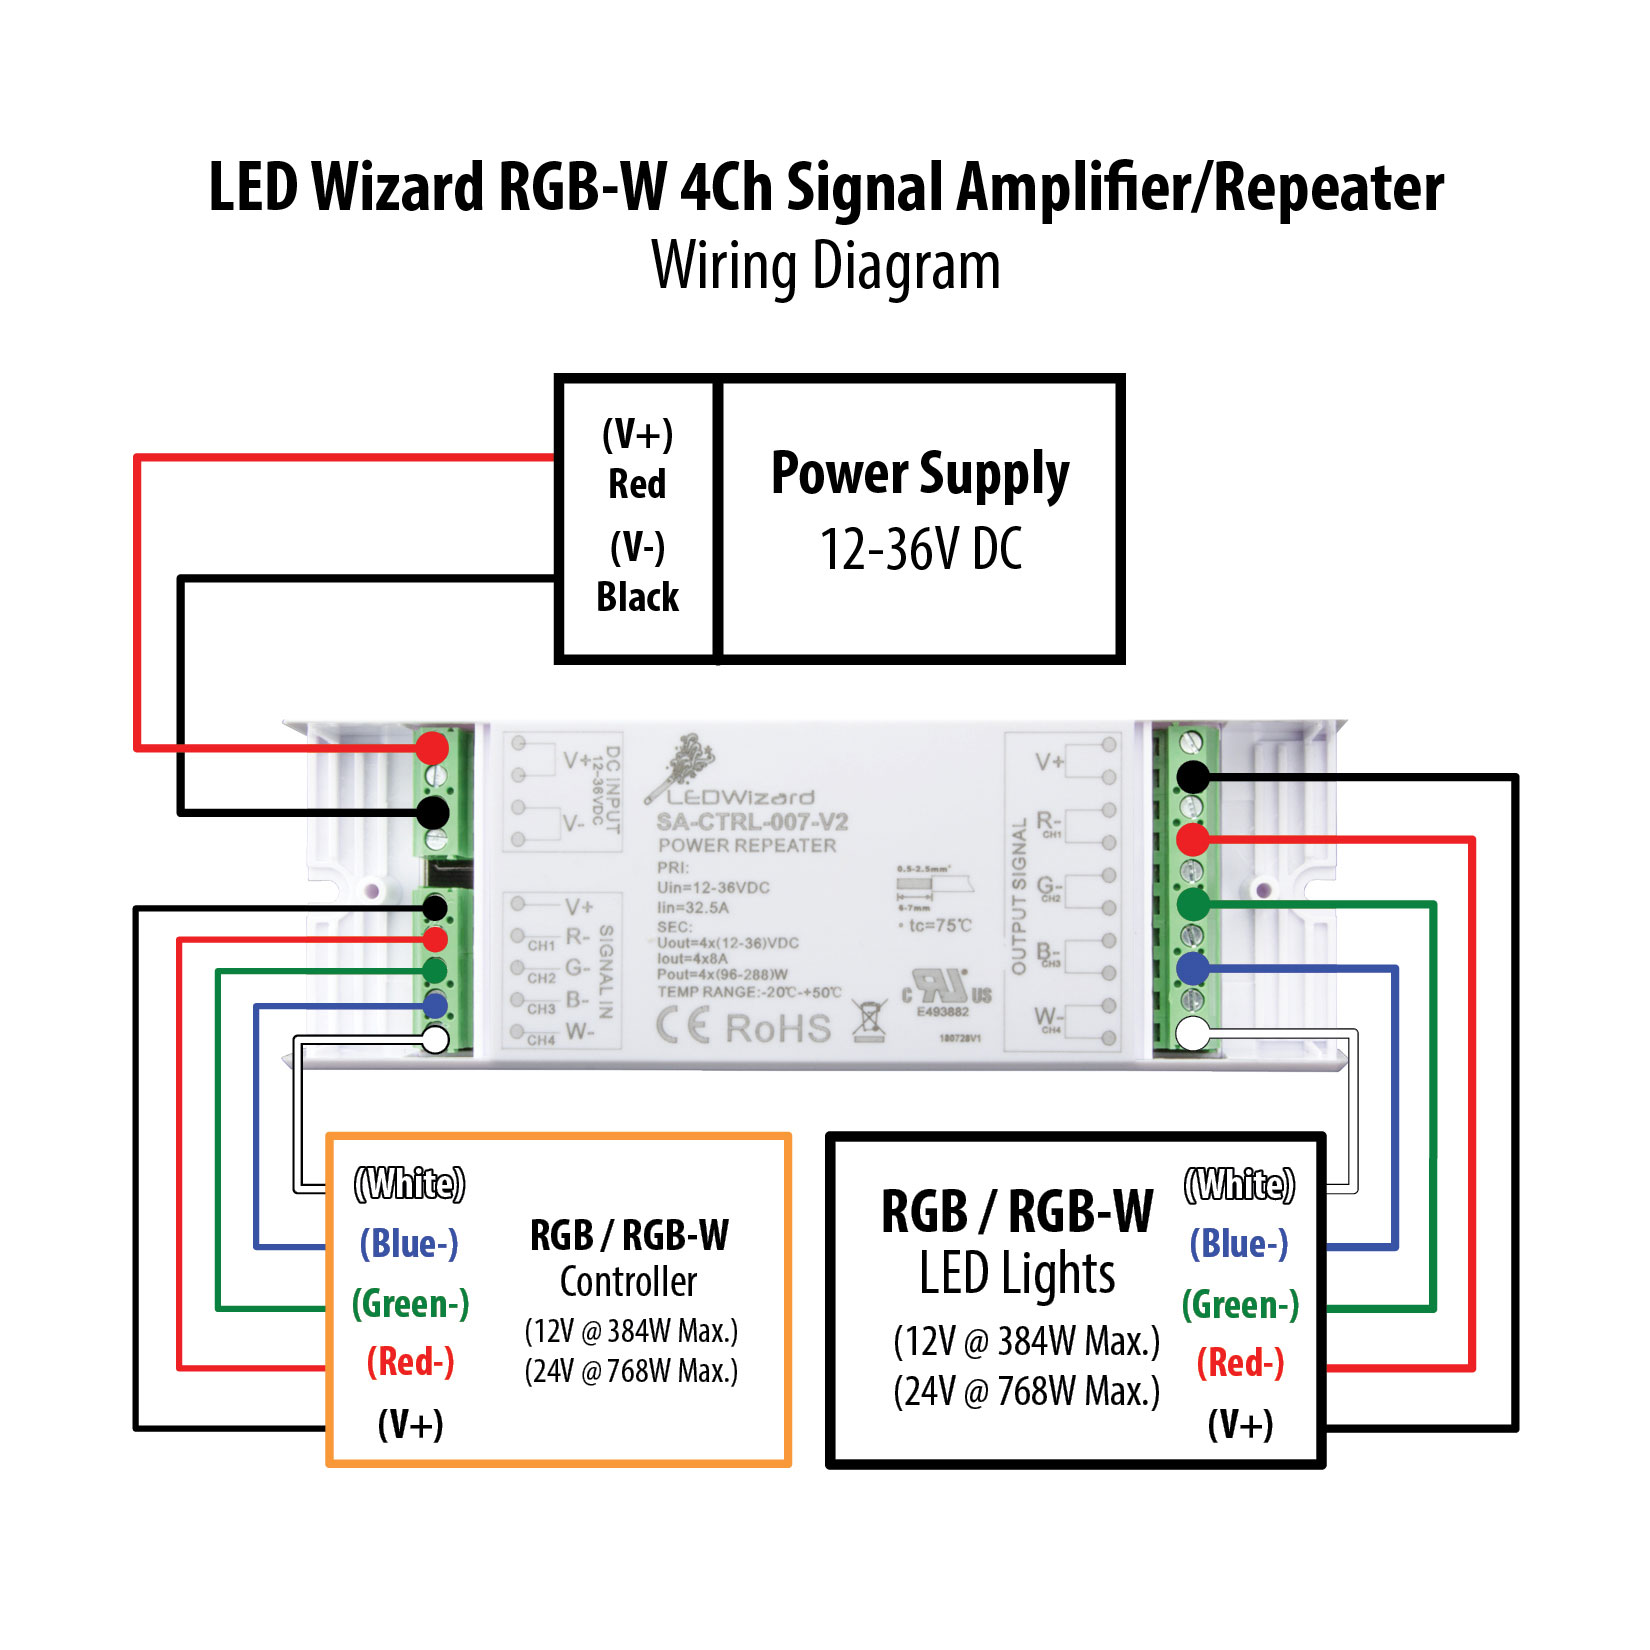 led wizard rgb signal amplifier/repeater philips chloride exit sign wiring diagram led sign wiring diagram